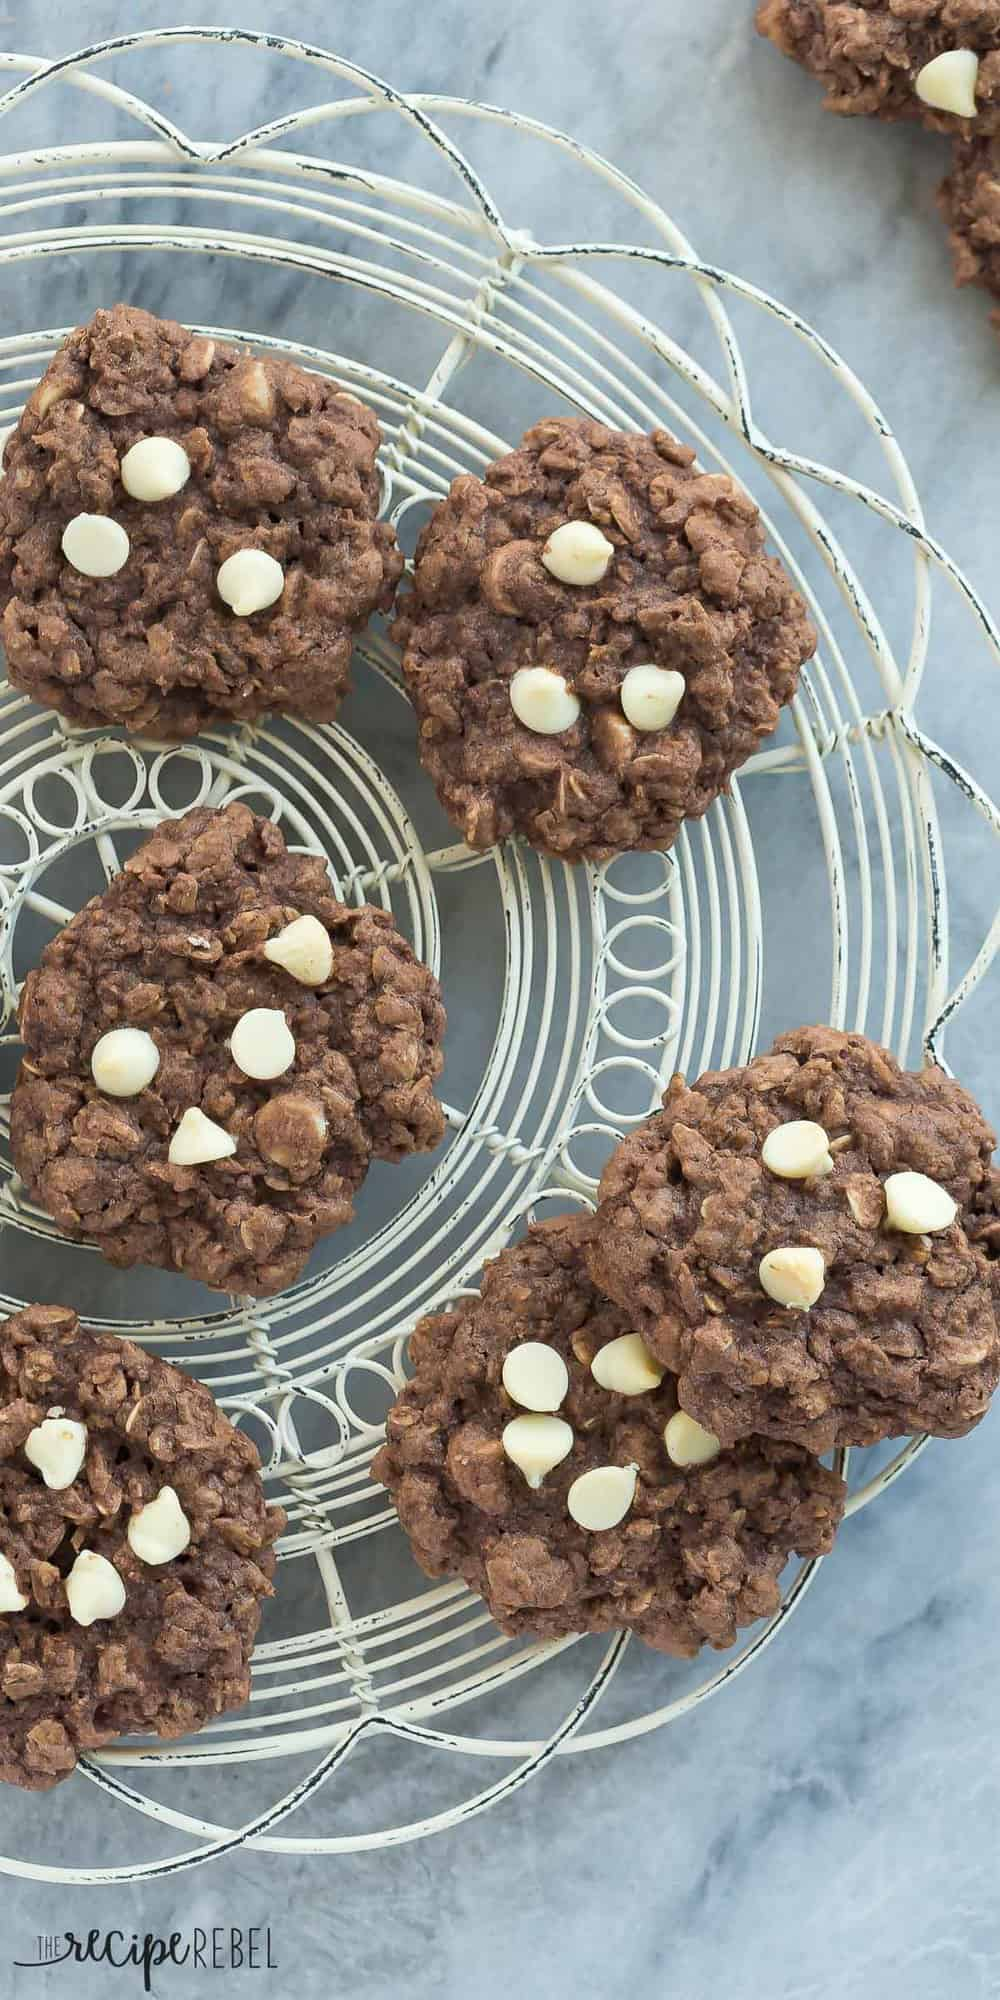 These Chewy Double Chocolate Oatmeal Cookies are chewy, chocolatey perfection! They are quick and easy to make and loaded with oats and white chocolate chips.